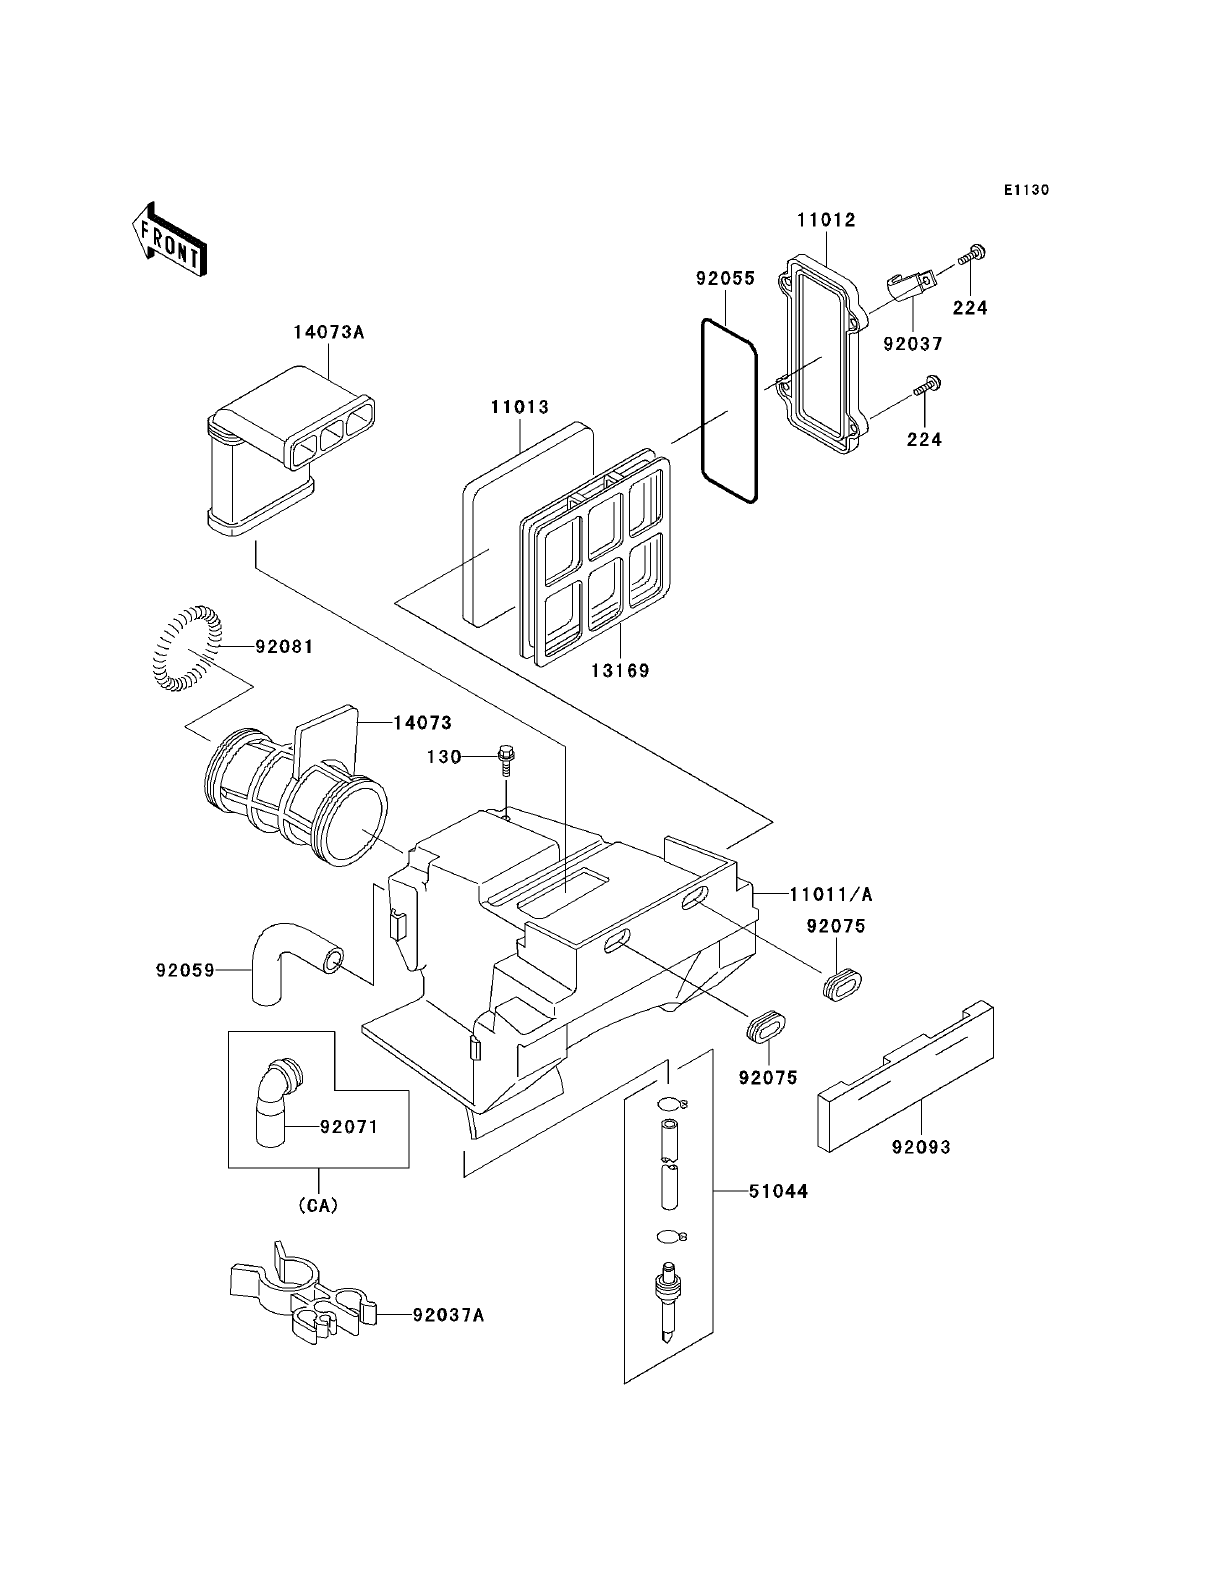 kawasaki klr250 parts diagrams airbox and air filter